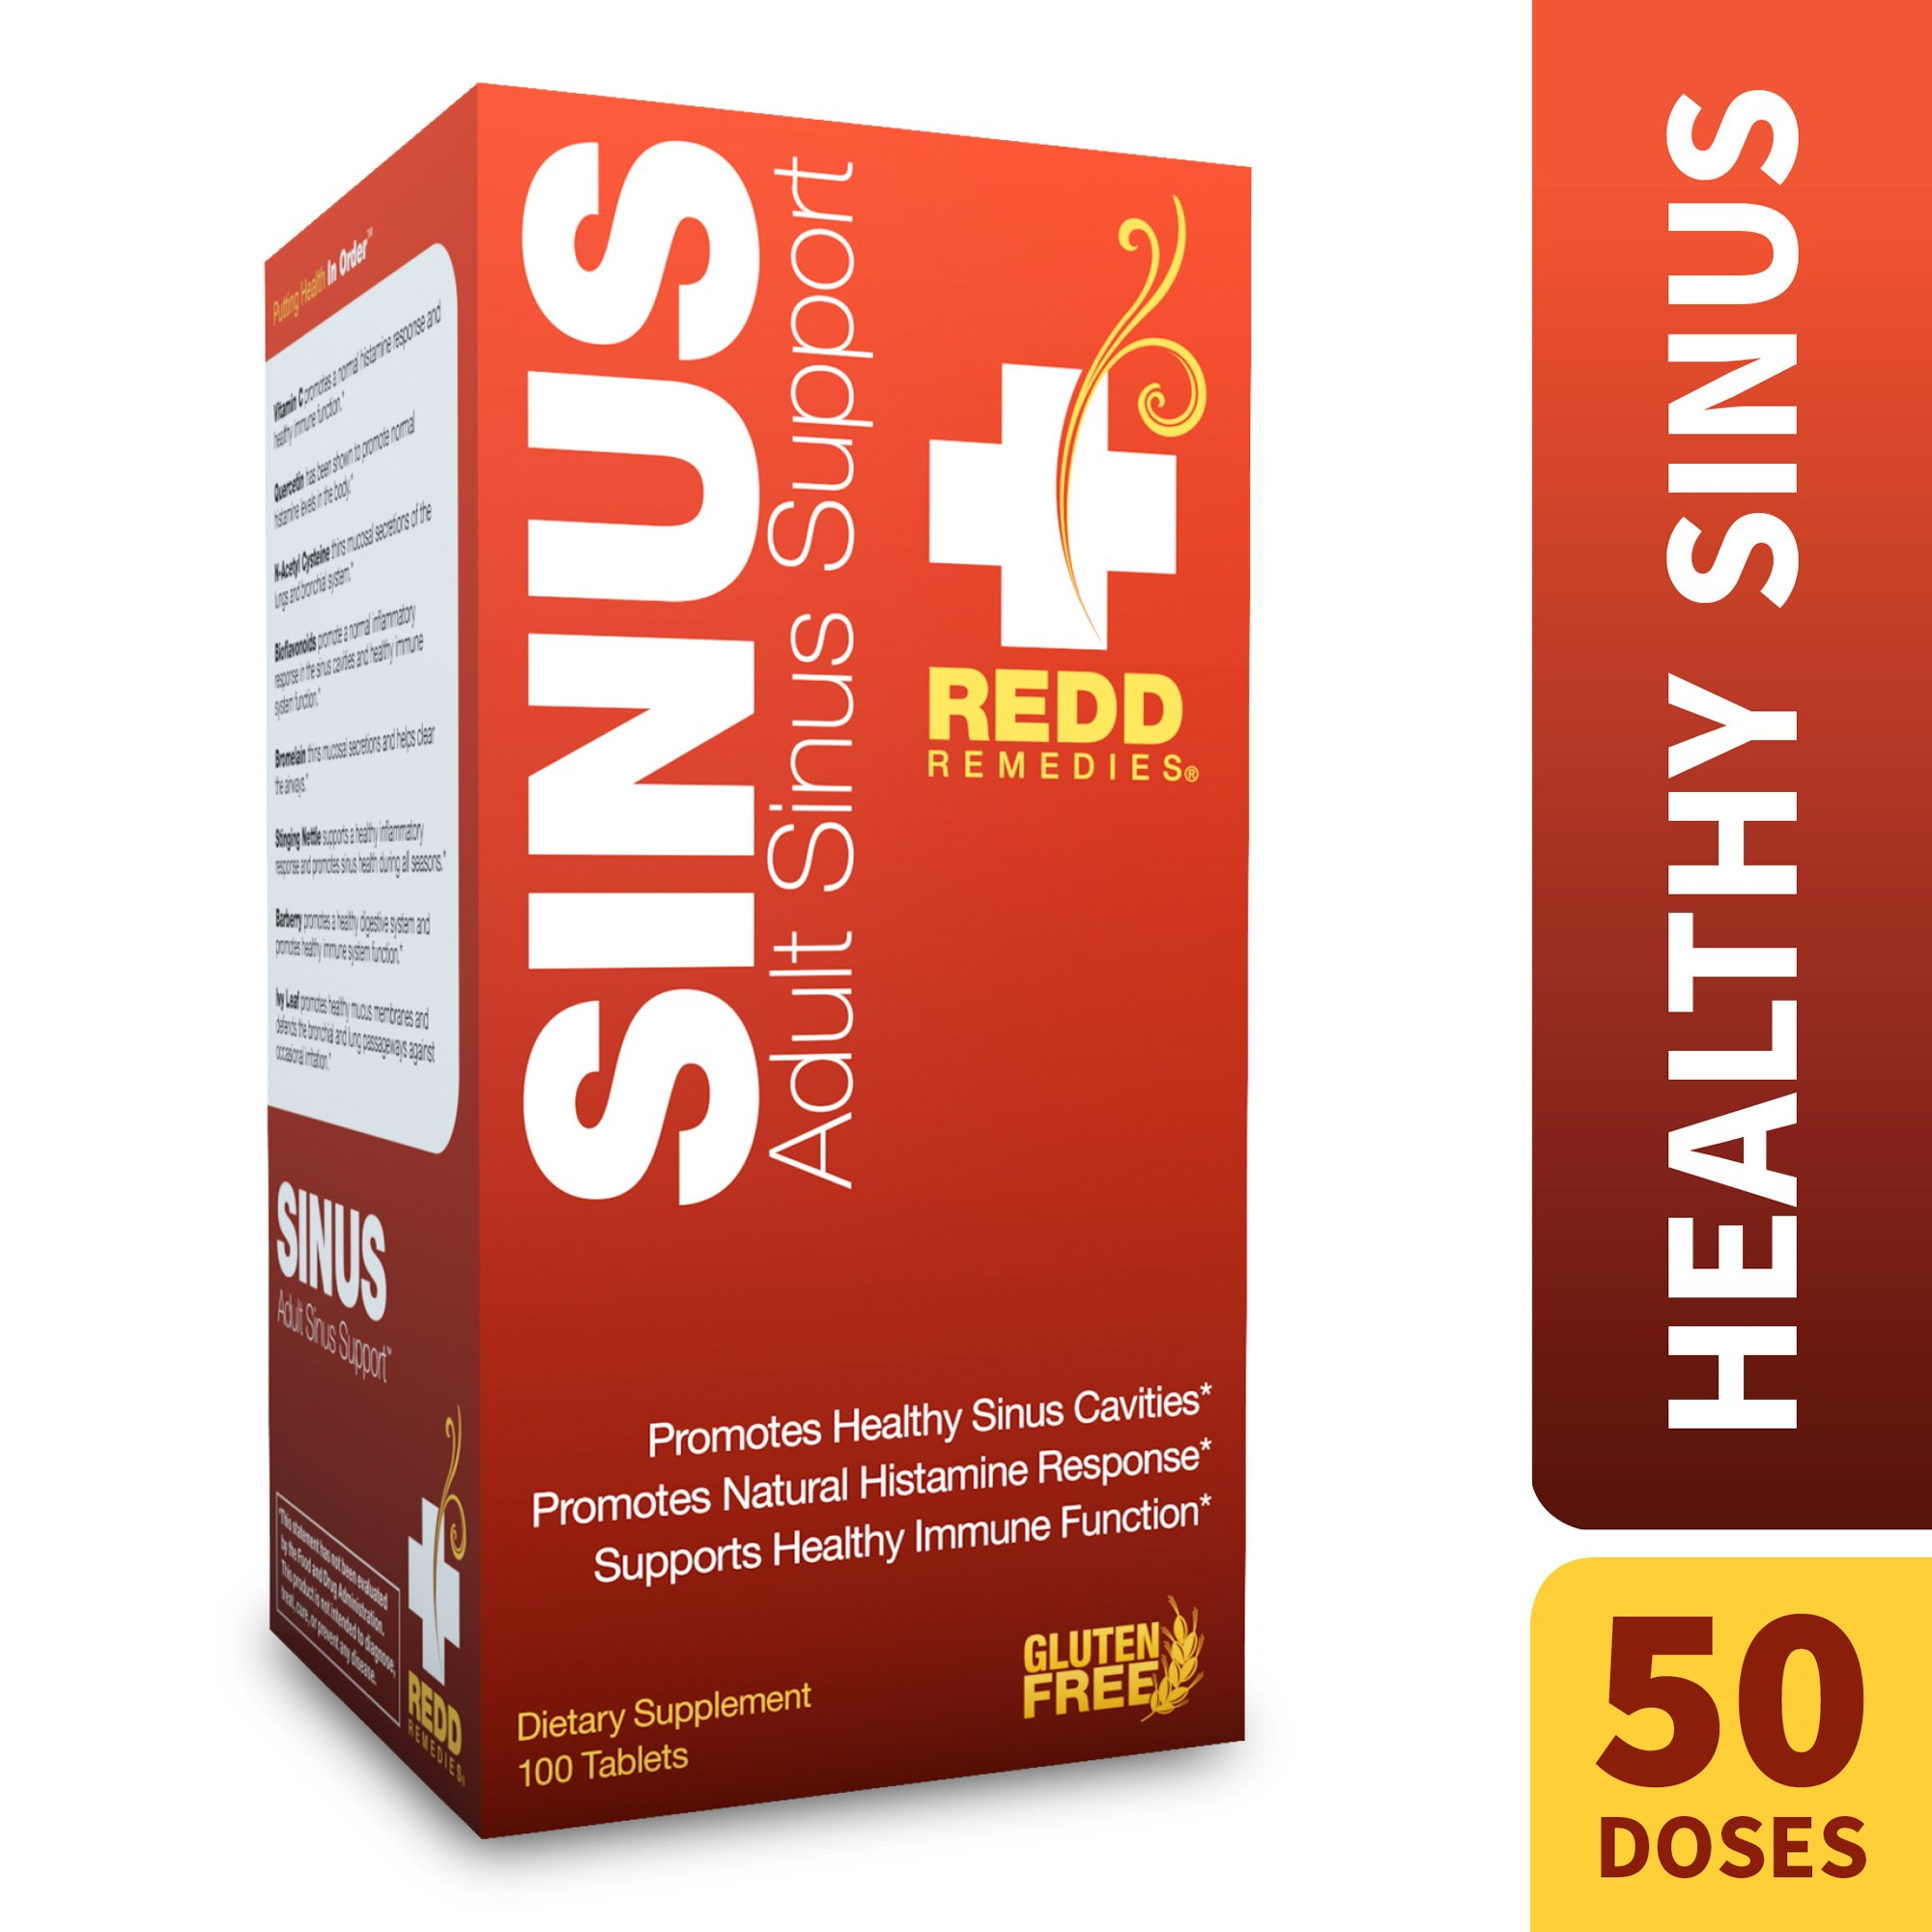 Redd Remedies - Adult Sinus Support, Natural Histamine Support for Sinus and Bronchial Health, 100 count by Redd Remedies